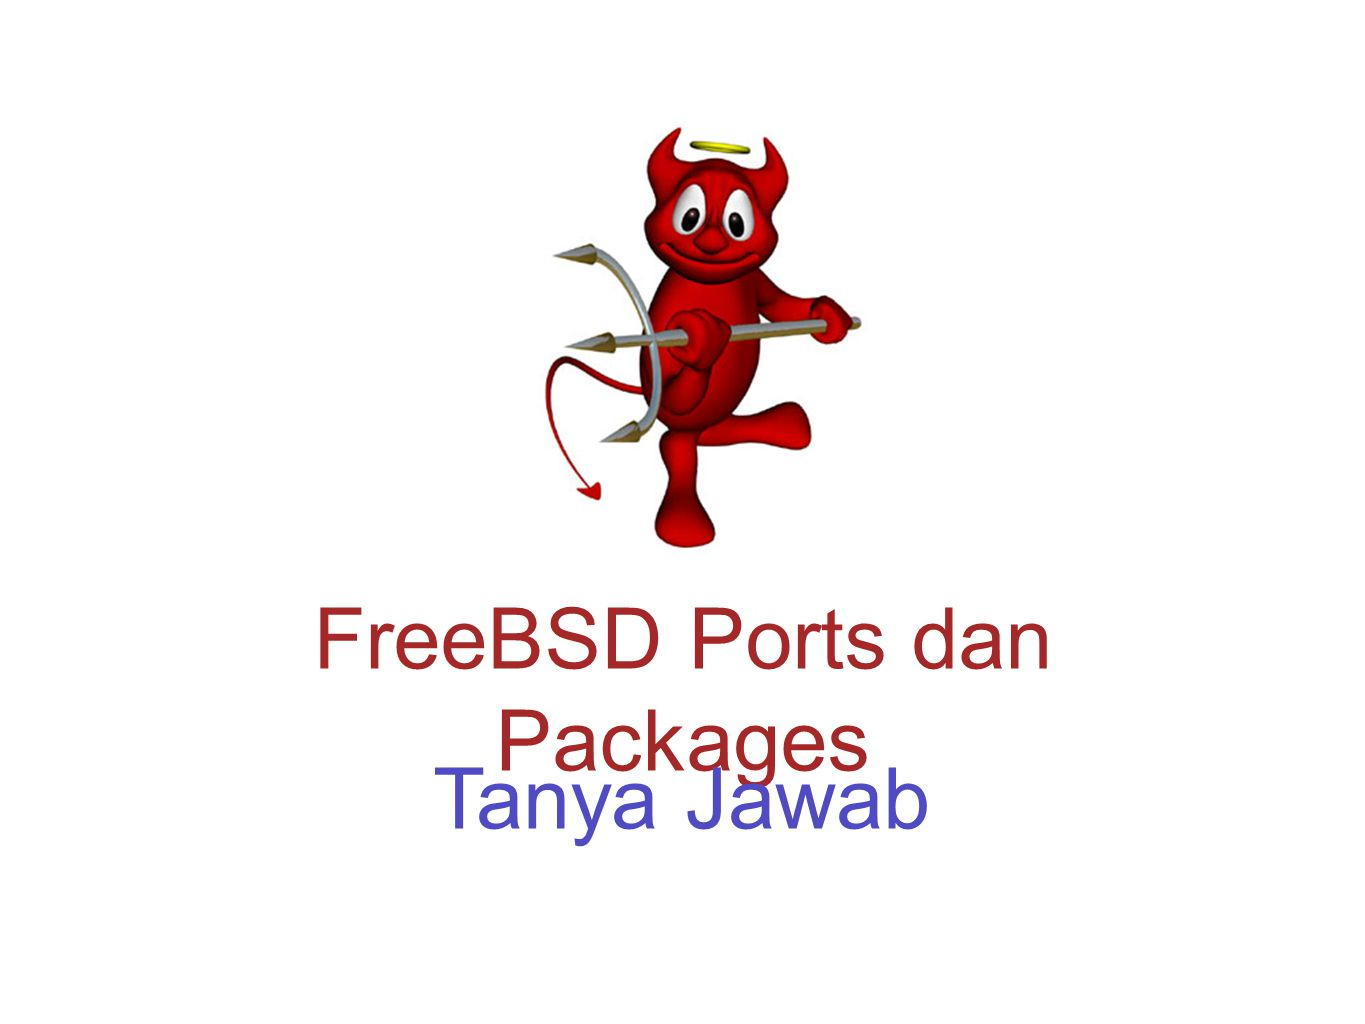 FreeBSD Ports dan Packages Tanya Jawab